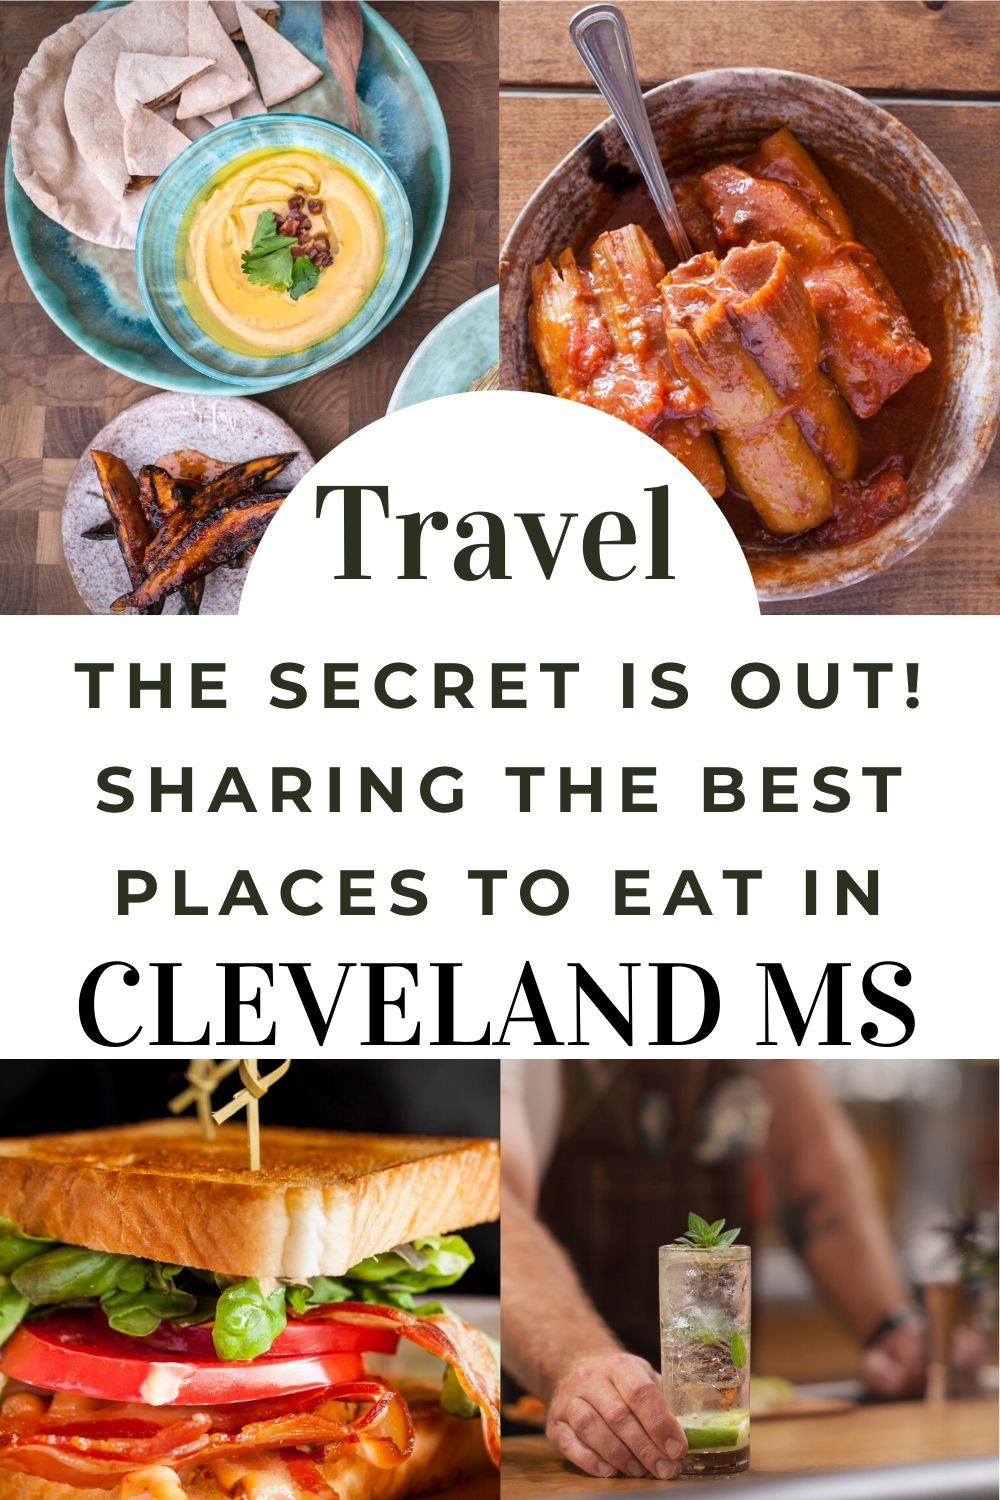 WHERE TO EAT IN CLEVELAND MS